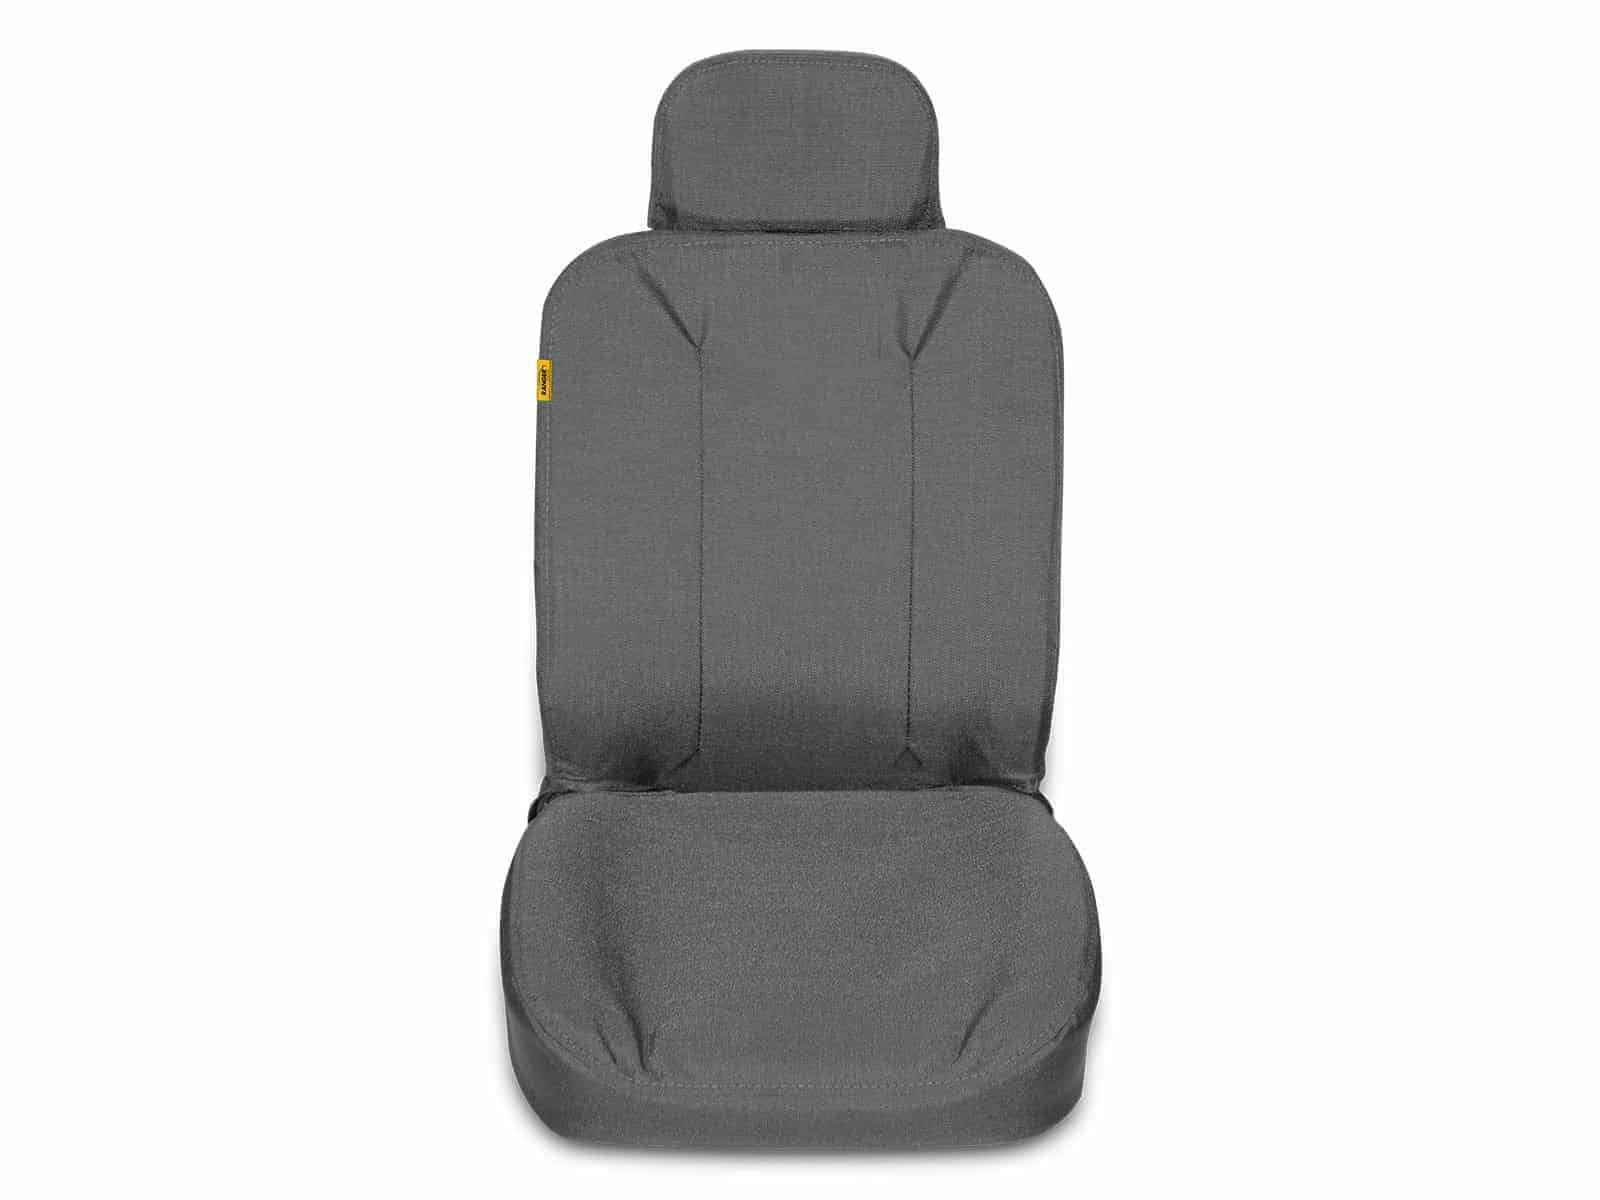 Ford Transit Van Seat Covers, 6255